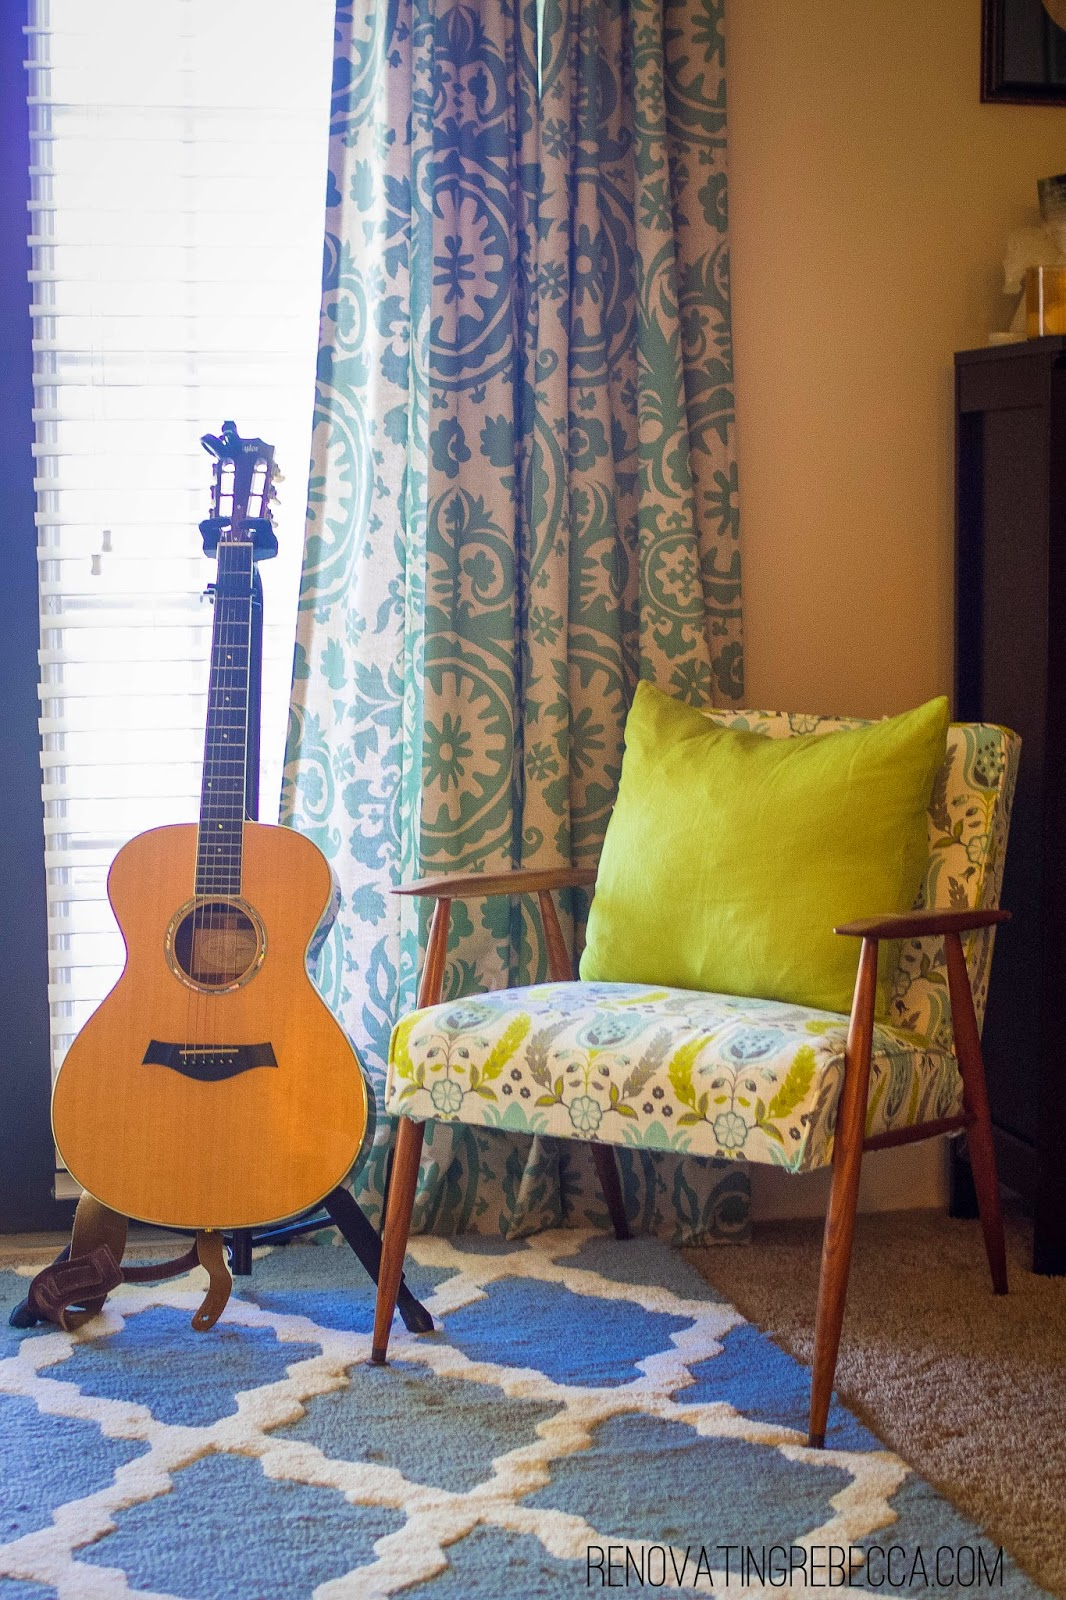 Colorful furniture with guitar